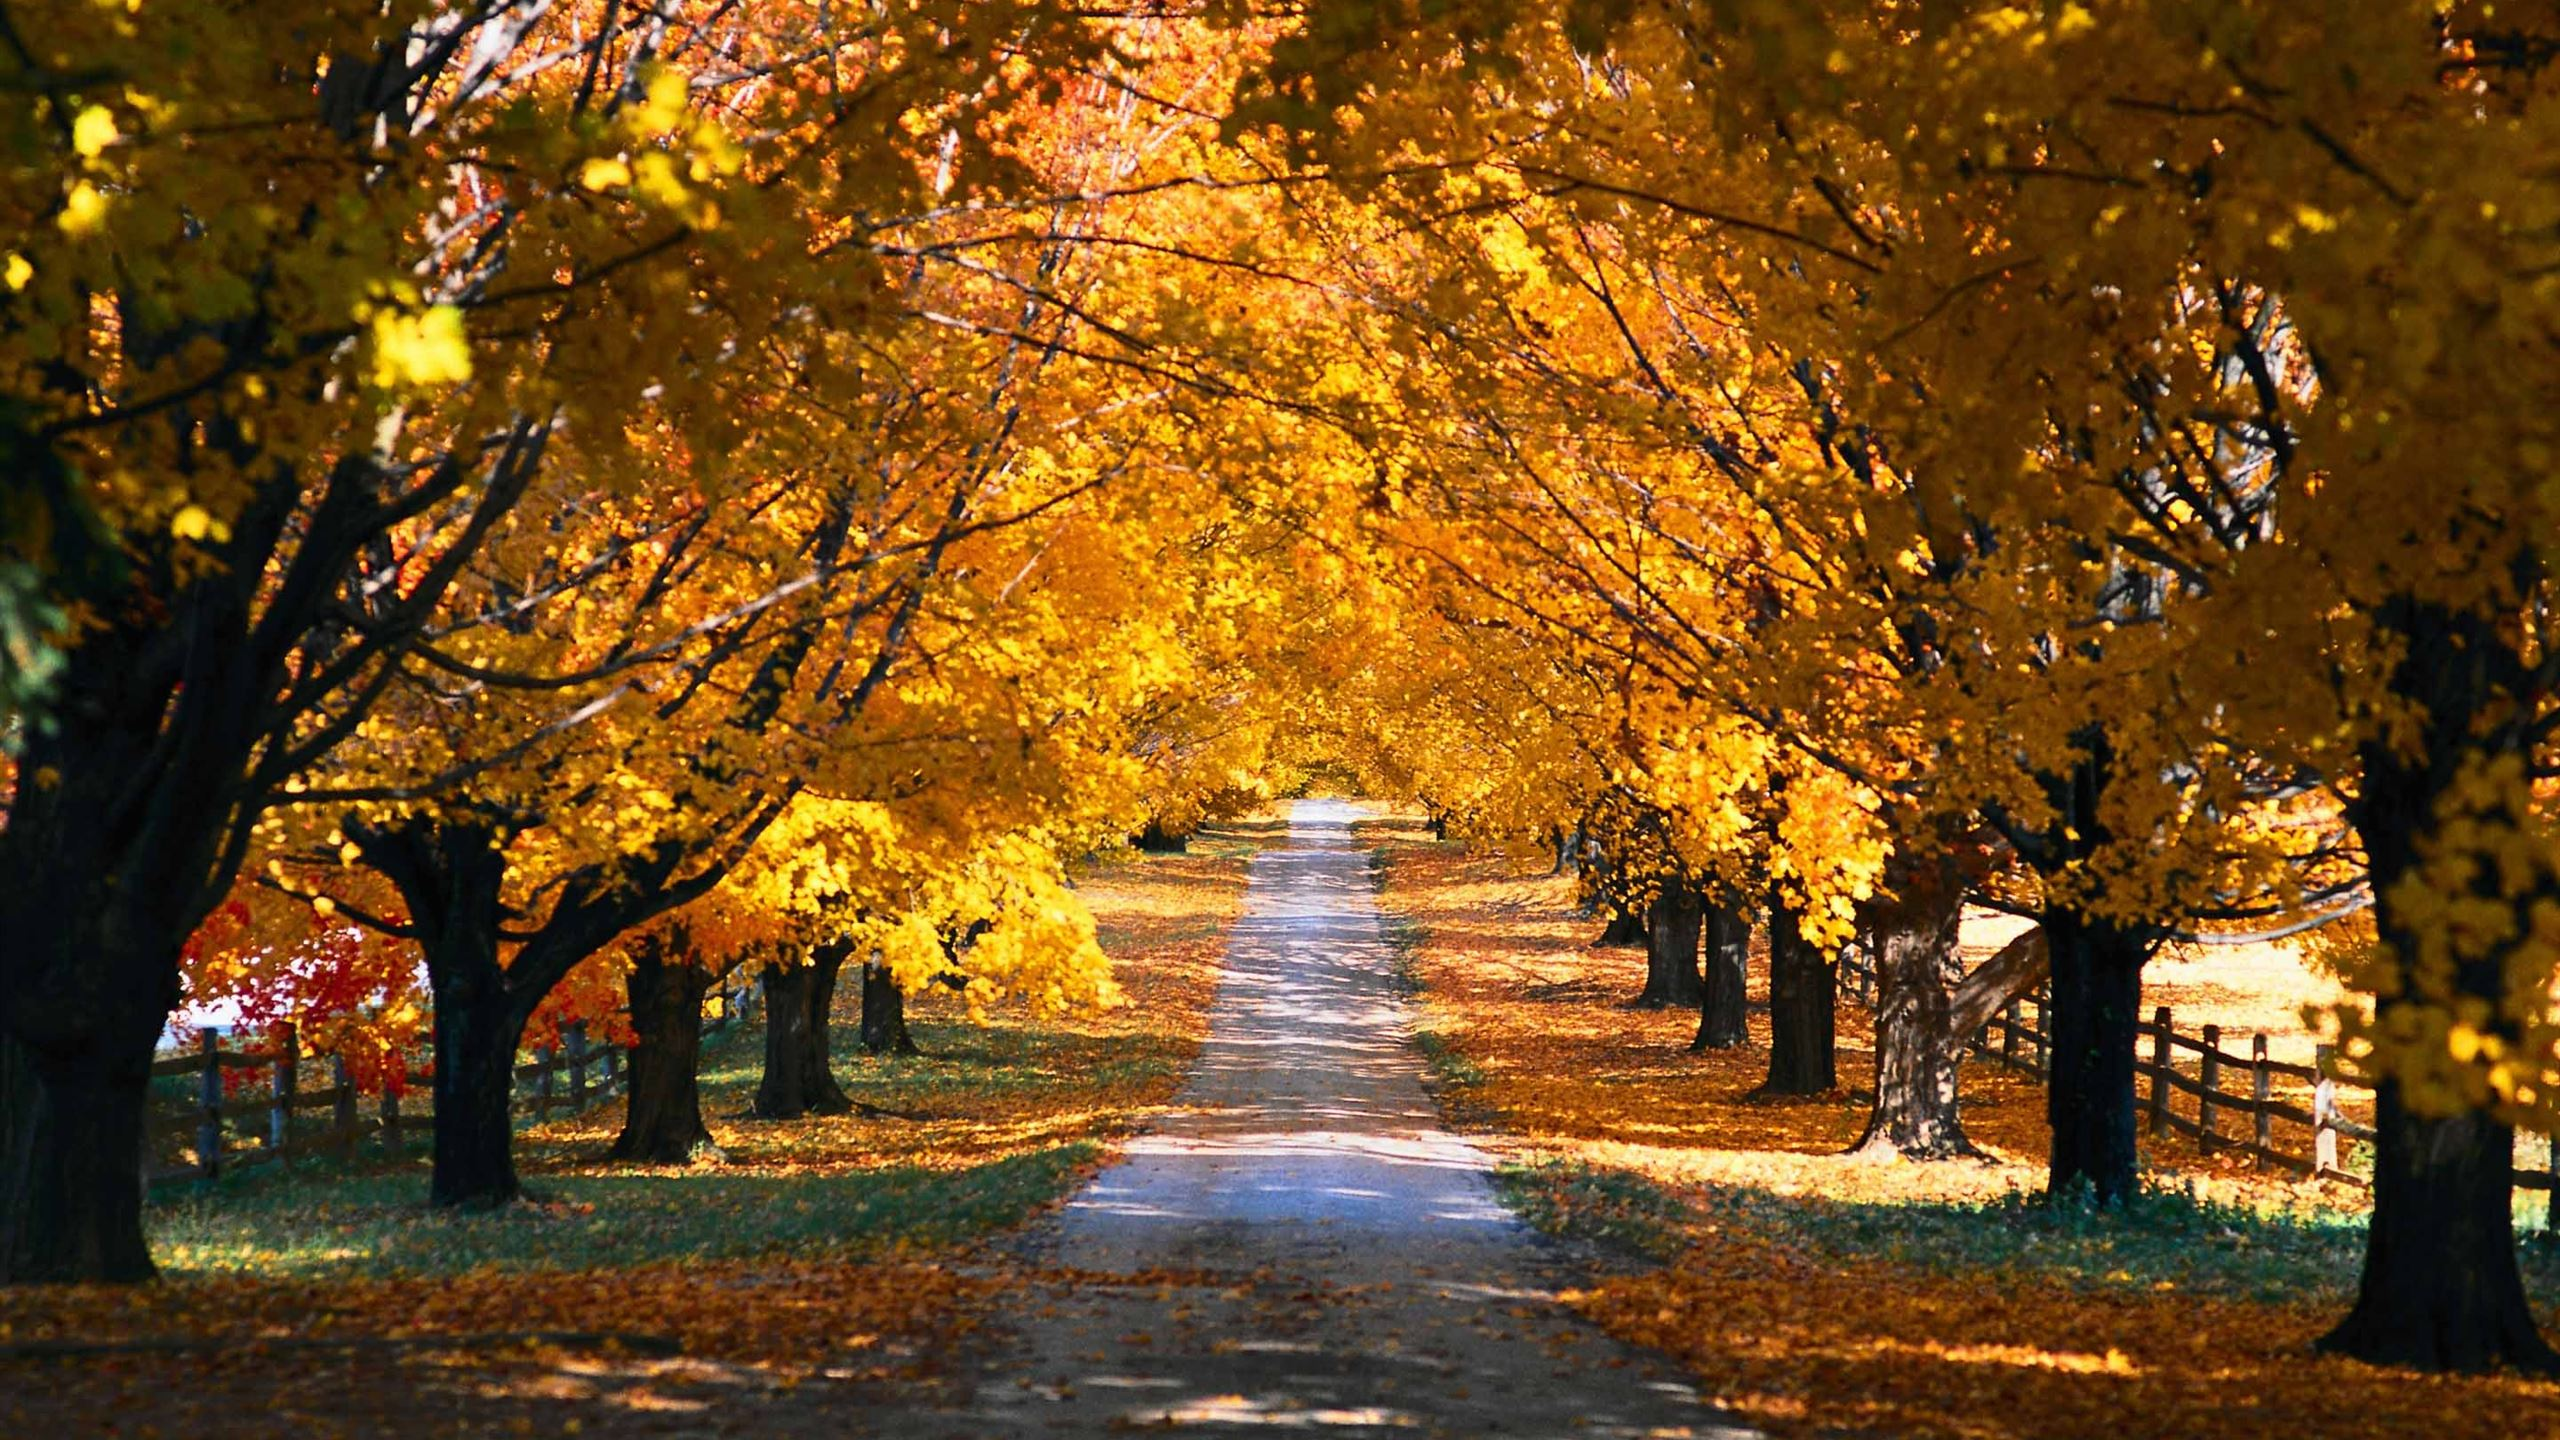 Tree Tunnel Road Autumn Mac Wallpaper Download Allmacwallpaper